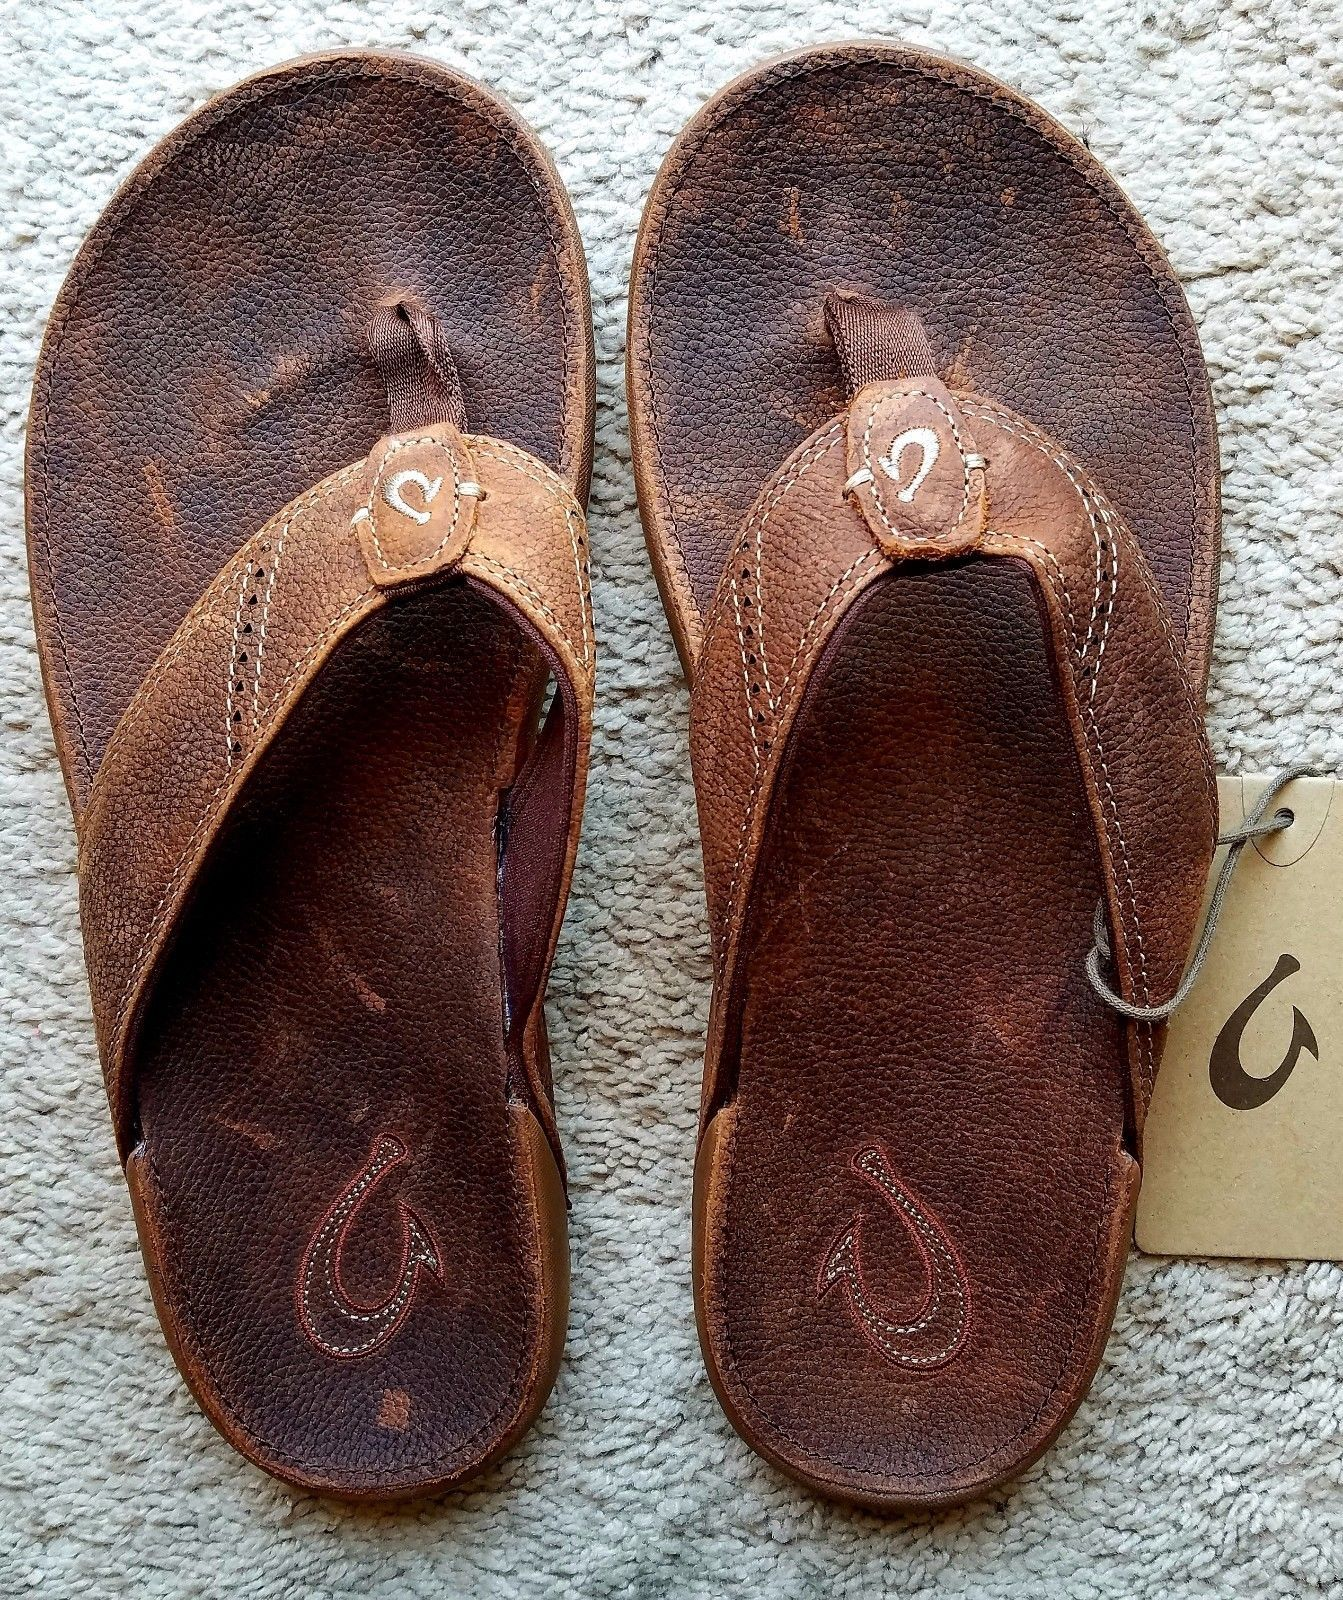 f85a8adef596 Sandals and Flip Flops 11504  Olukai Nui Leather Flip-Flops - Men S Rum Rum  Size 11 -  BUY IT NOW ONLY   62.99 on eBay!